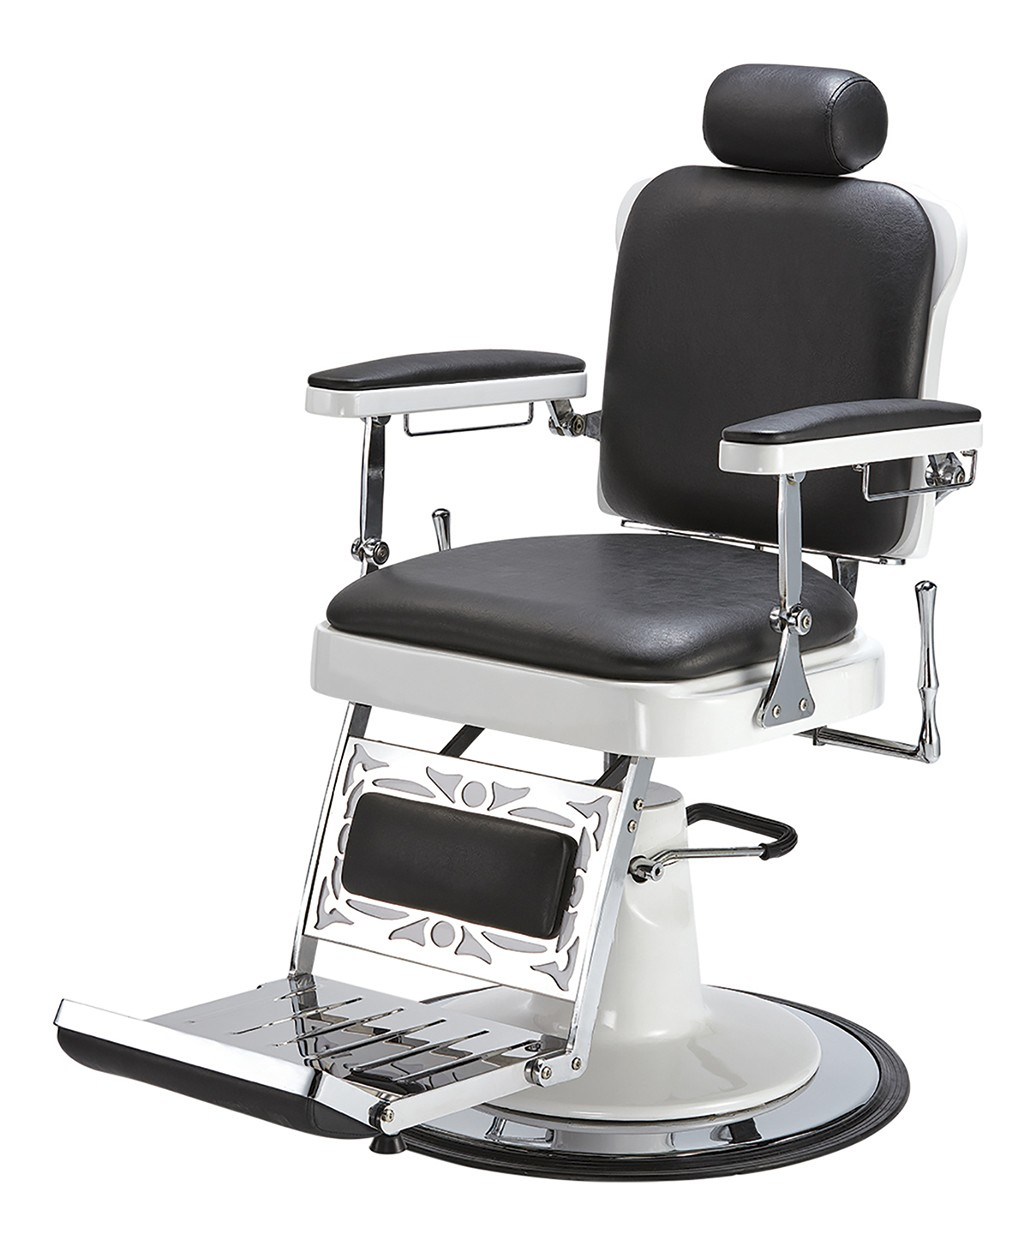 Pibbs 663 Master Barber Chair